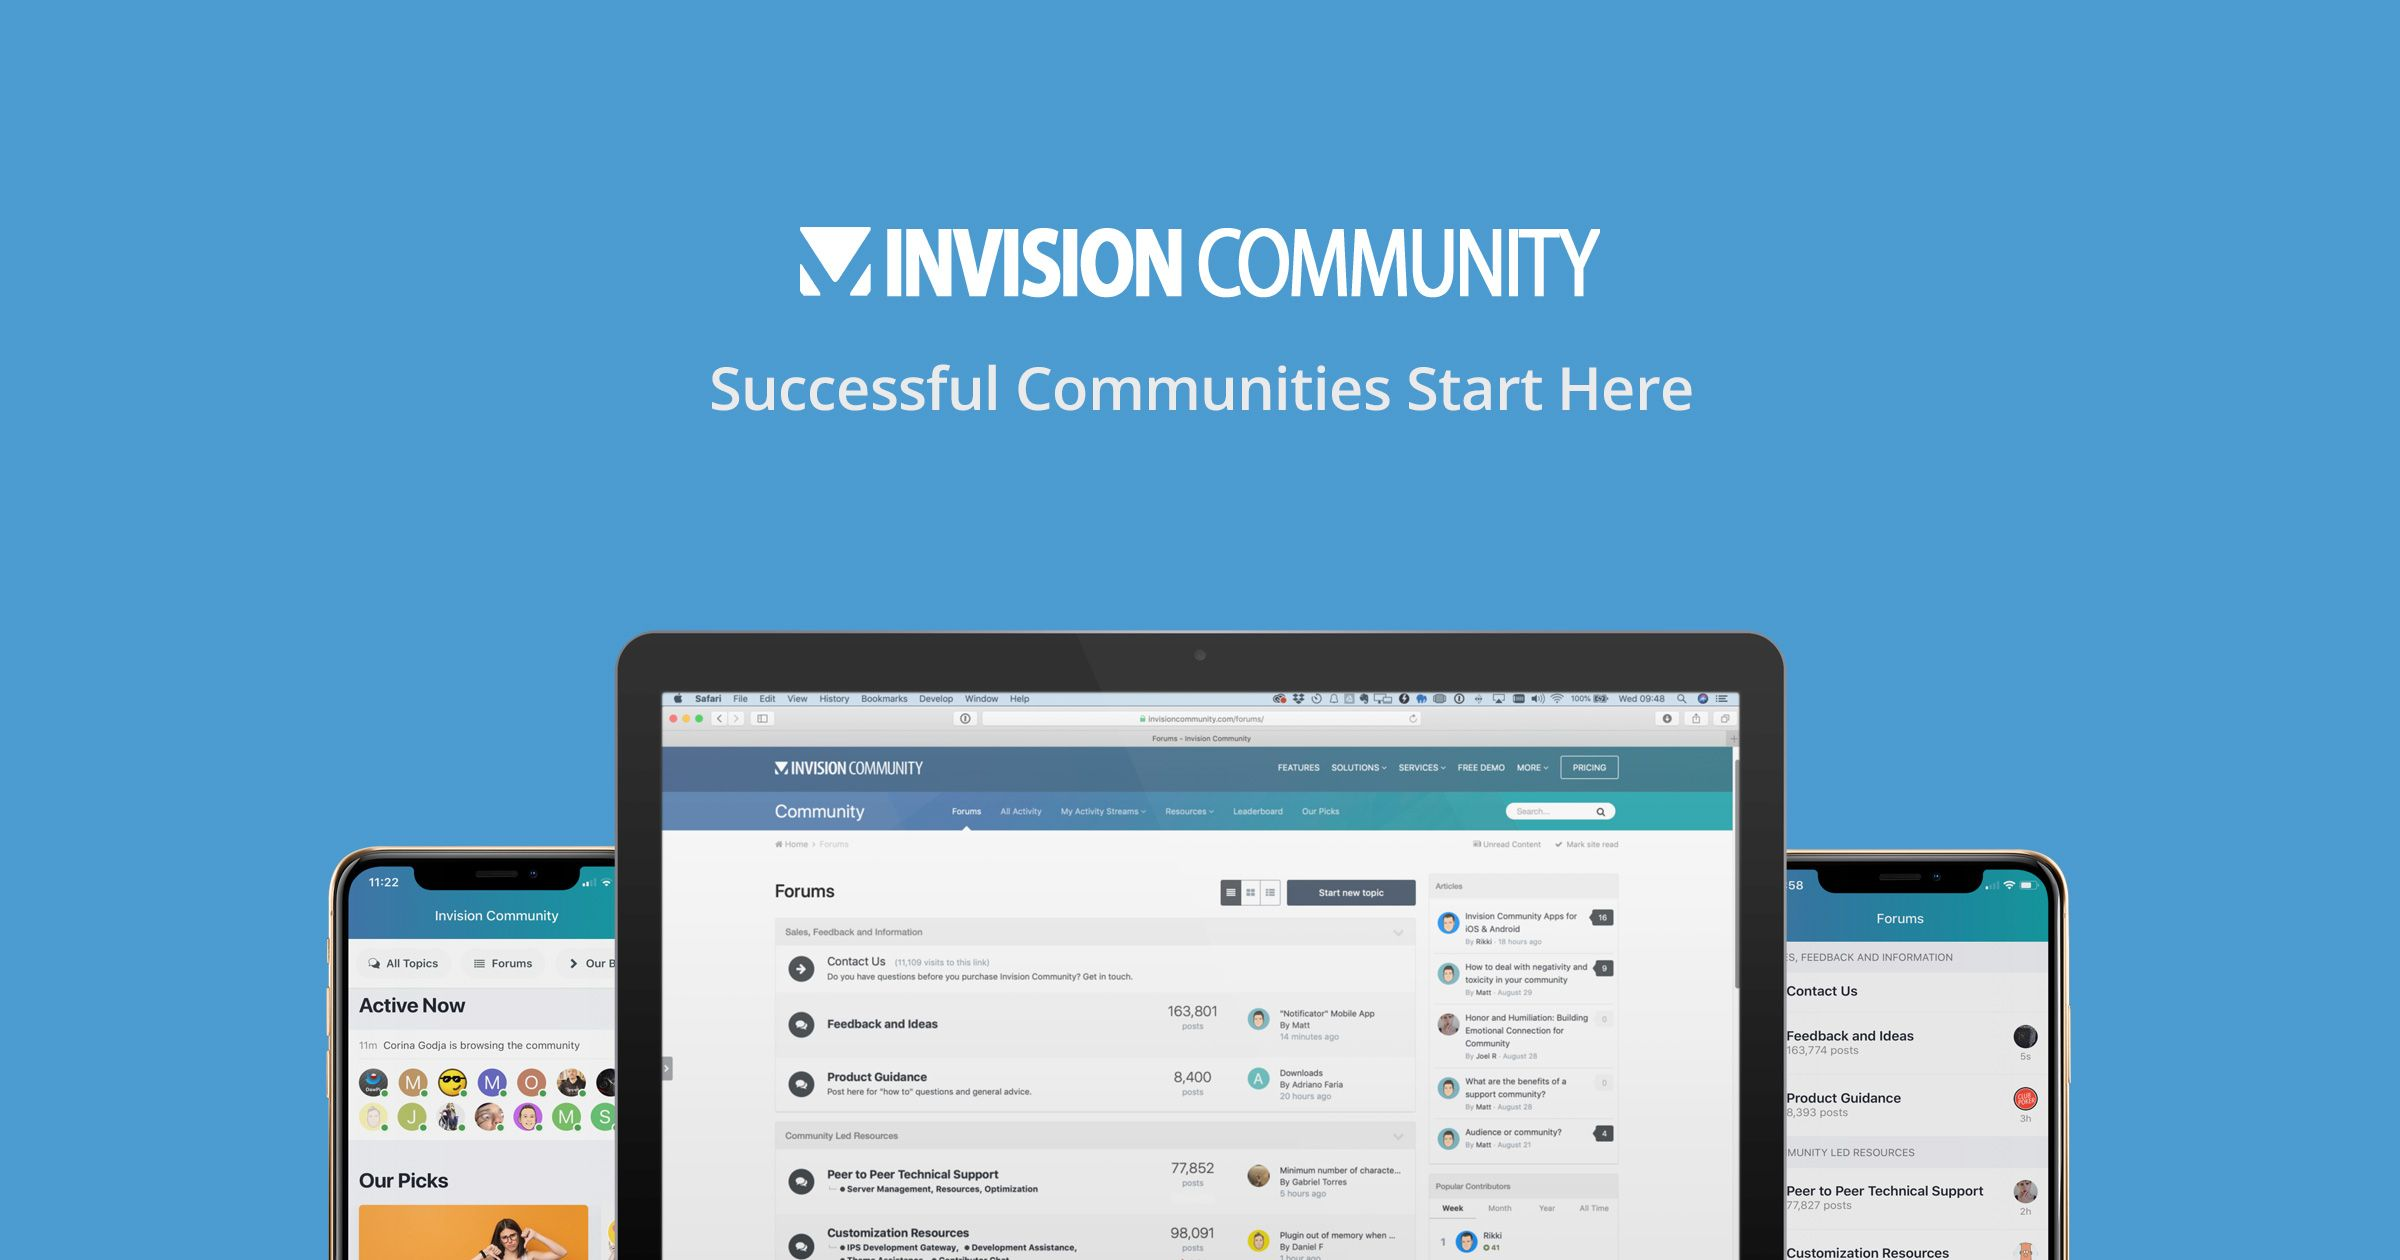 Sign up for Invision Community in the Cloud - Invision Community